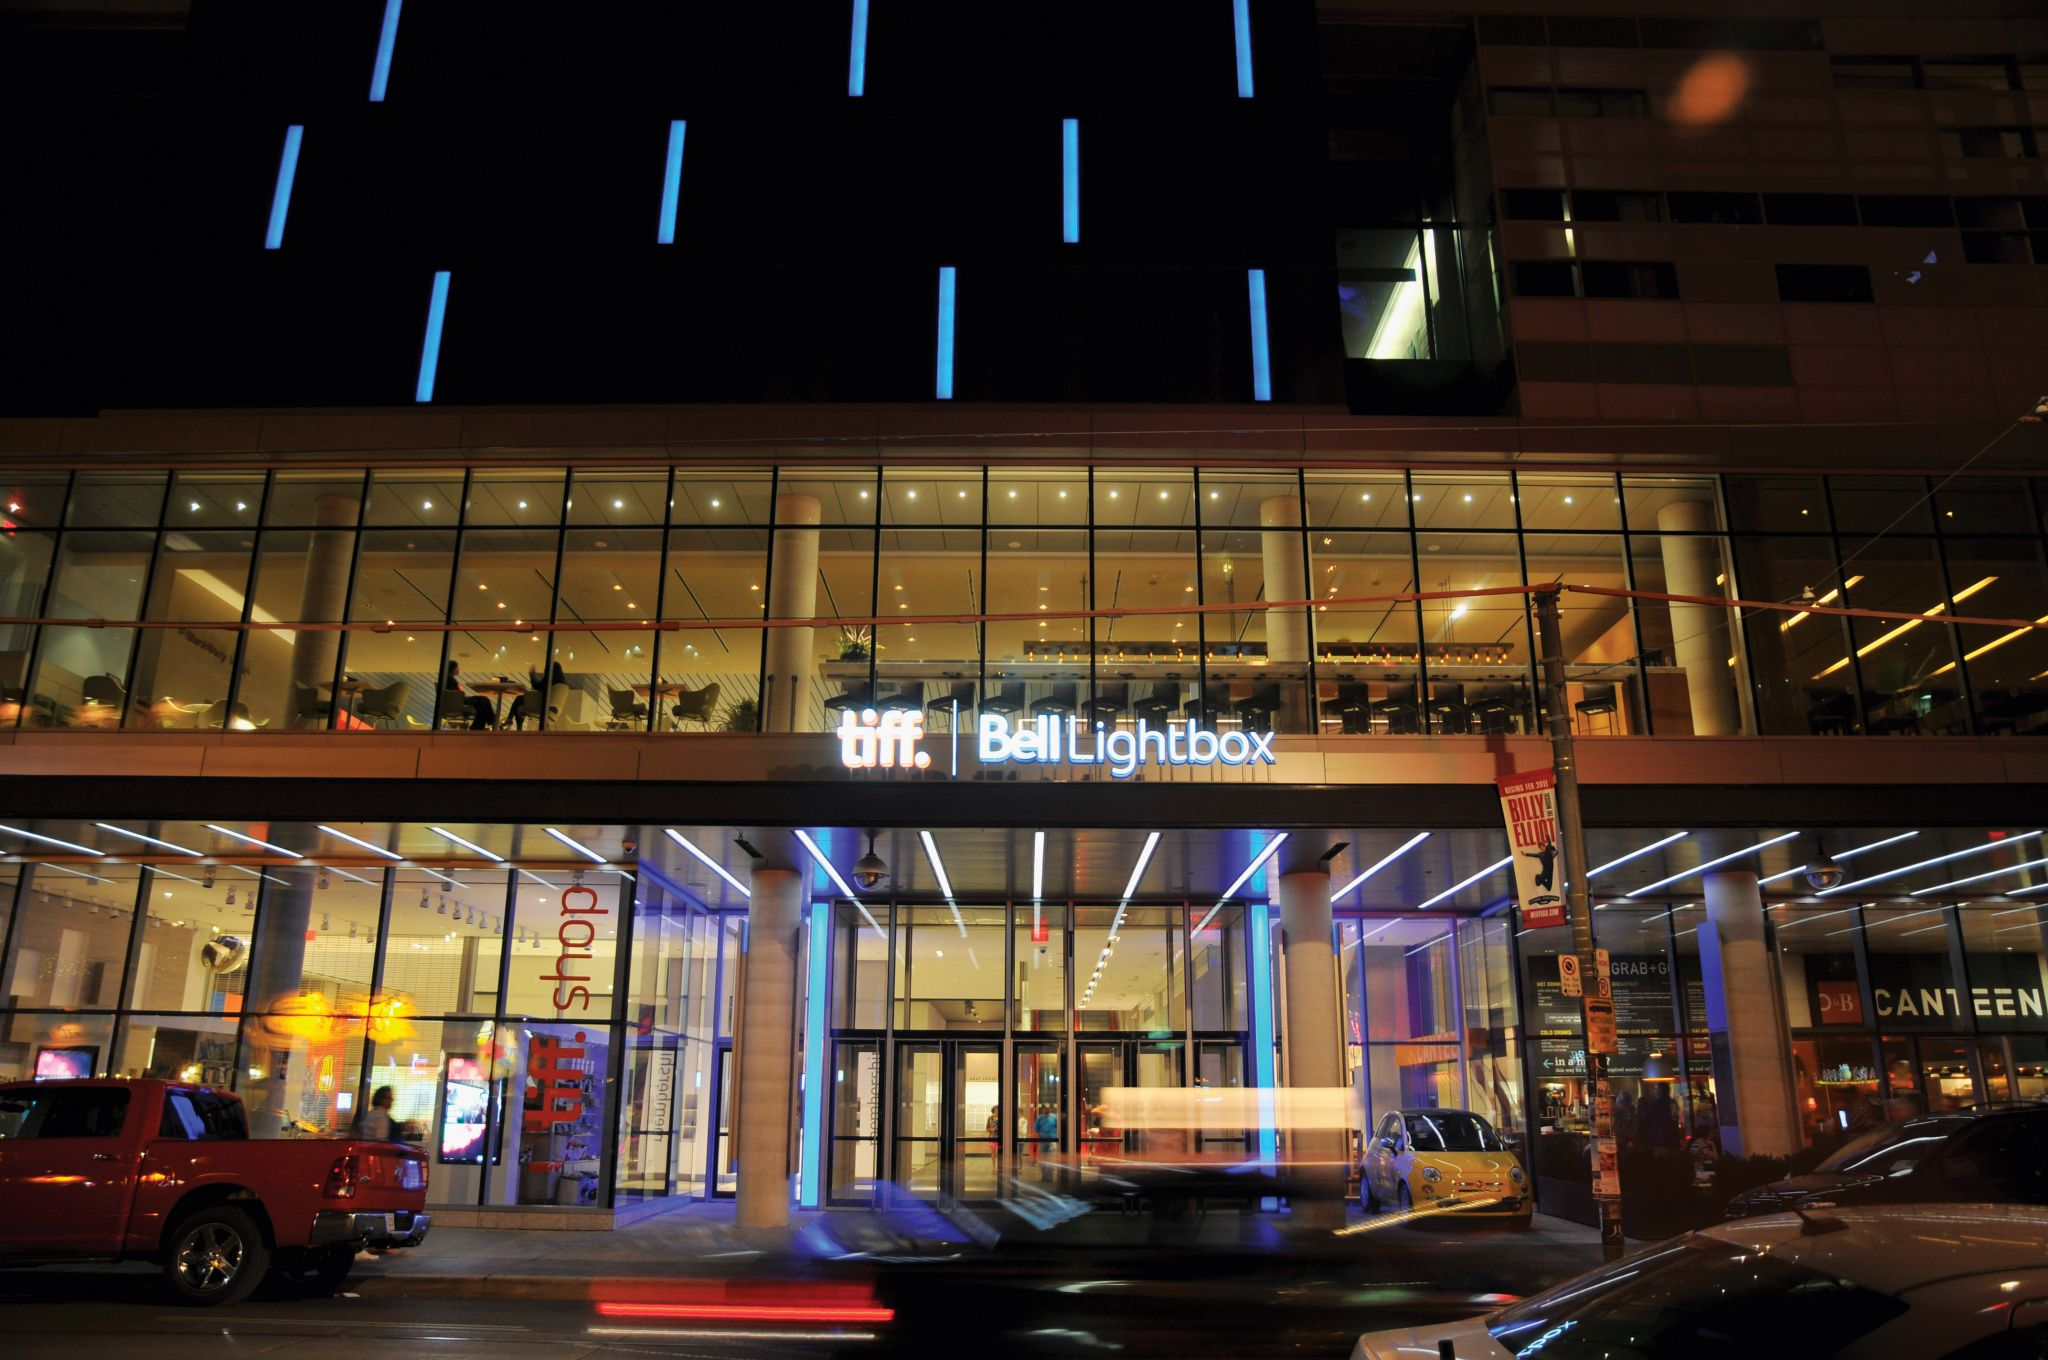 Tiff Bell Lightbox at night exterior shot